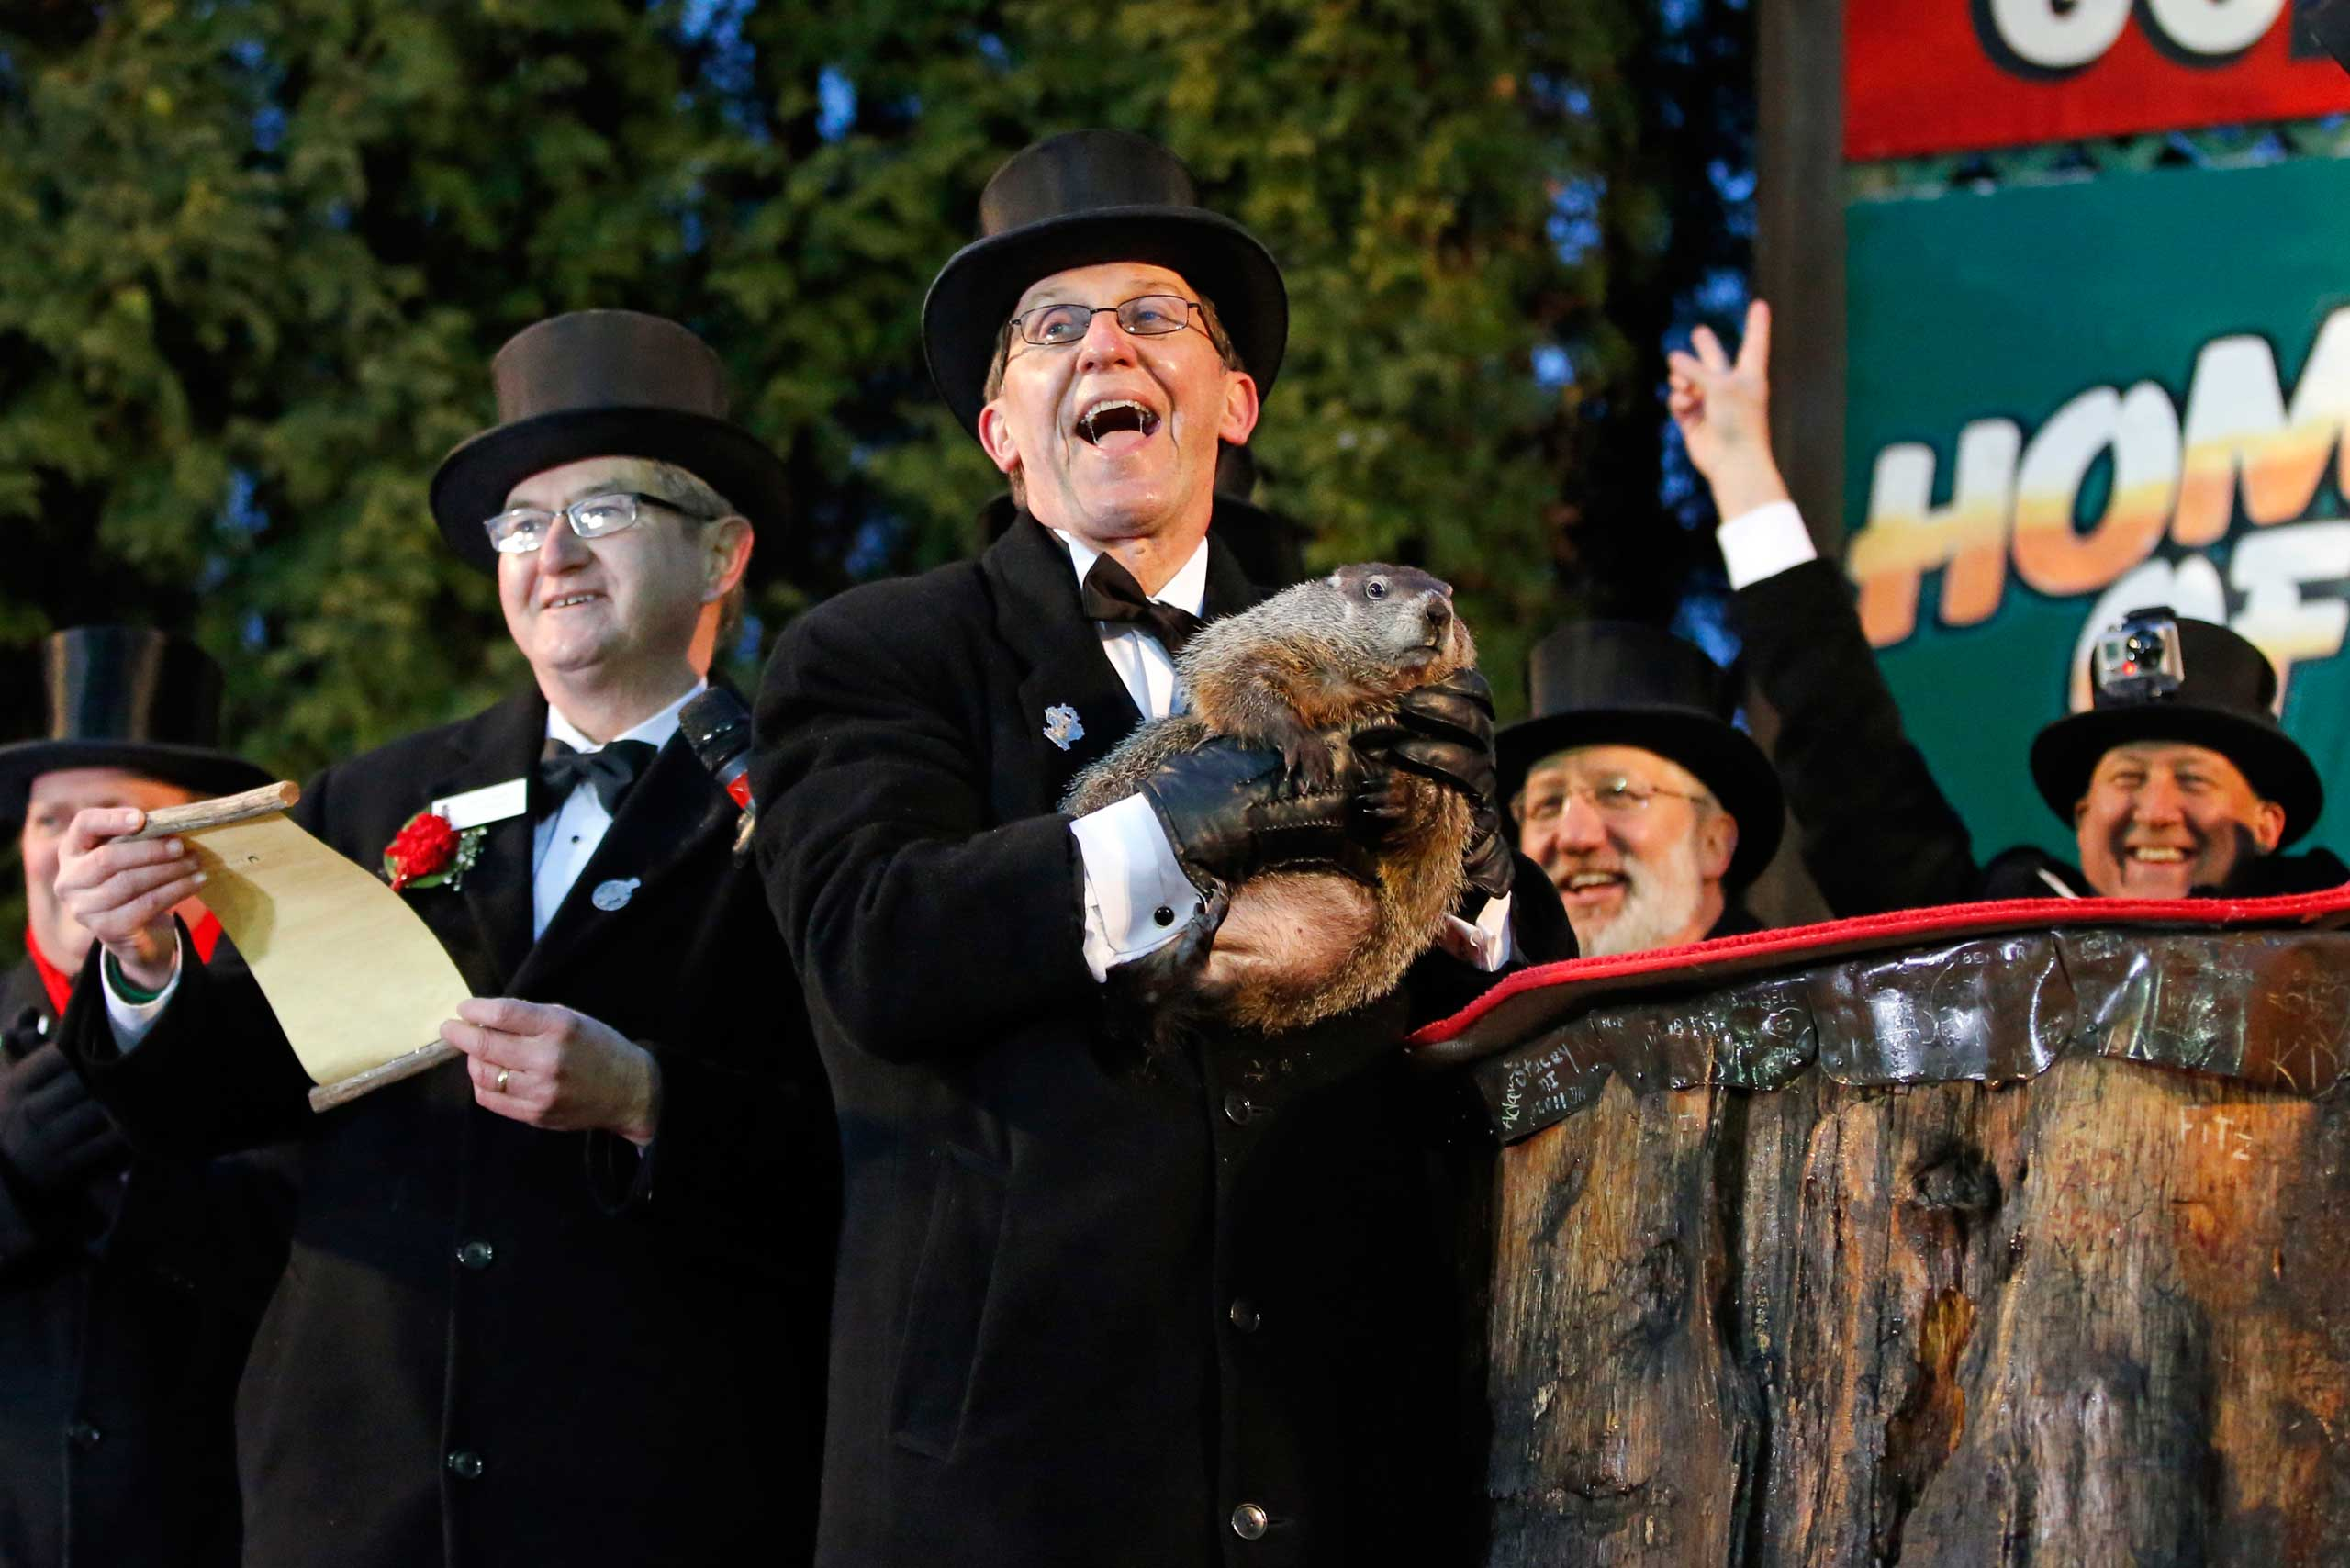 Groundhog Club handler Ron Ploucha, center, holds Punxsutawney Phil, the weather prognosticating groundhog, during the 129th celebration of Groundhog Day on Gobbler's Knob in Punxsutawney, Pa., Feb. 2, 2015.